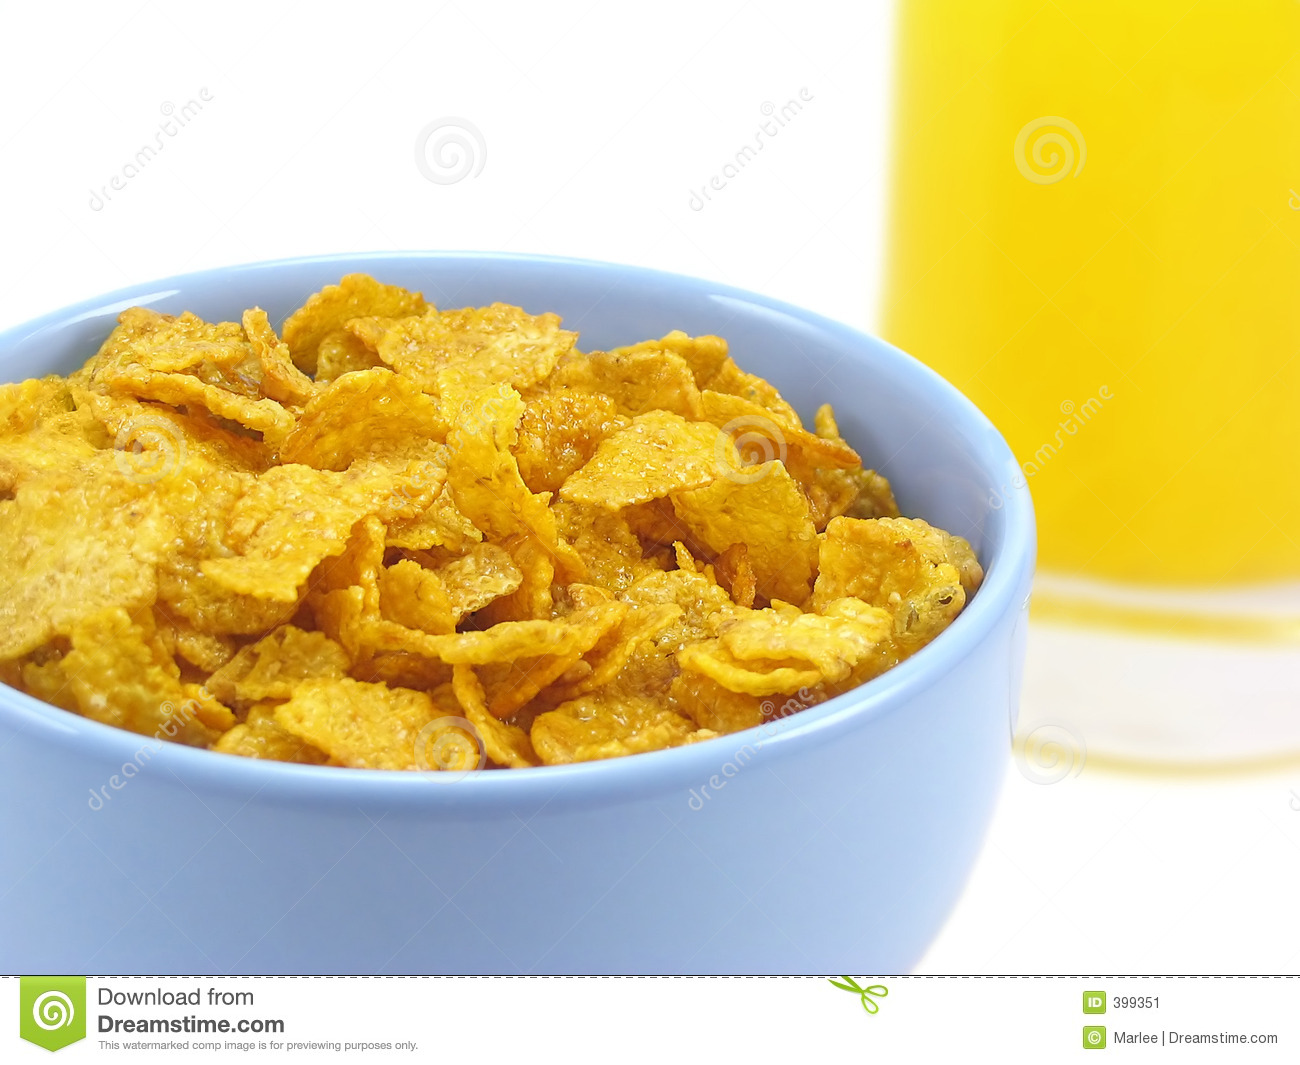 Bowl Of Cereal And Orange Juice Stock Image - Image: 399351